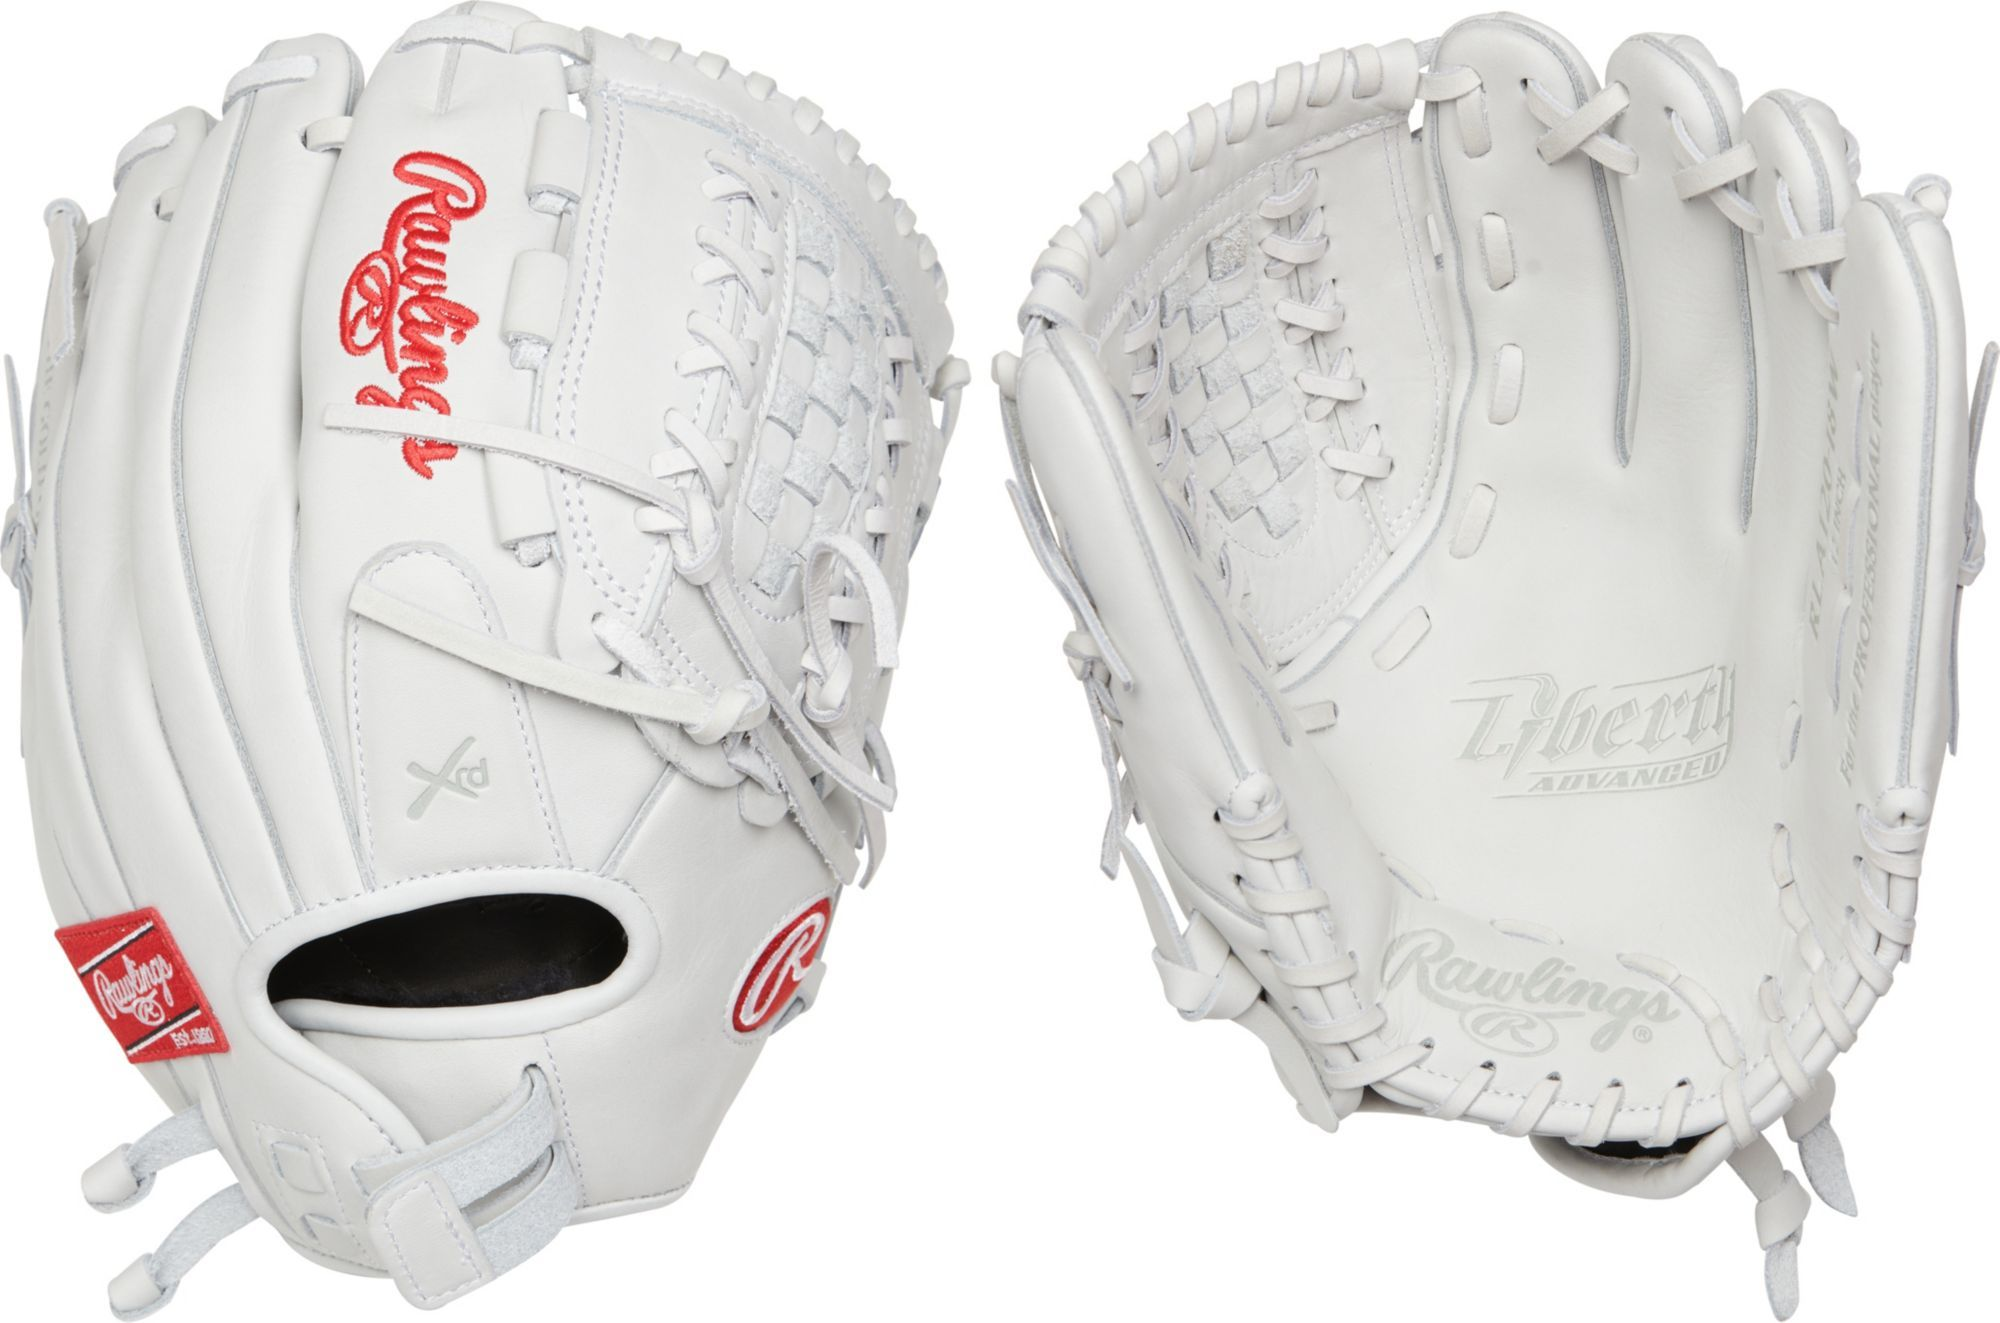 Rawlings Playmaker 12 Inch Adult Baseball Softball Glove Rh Softball Gloves Gloves Baseball